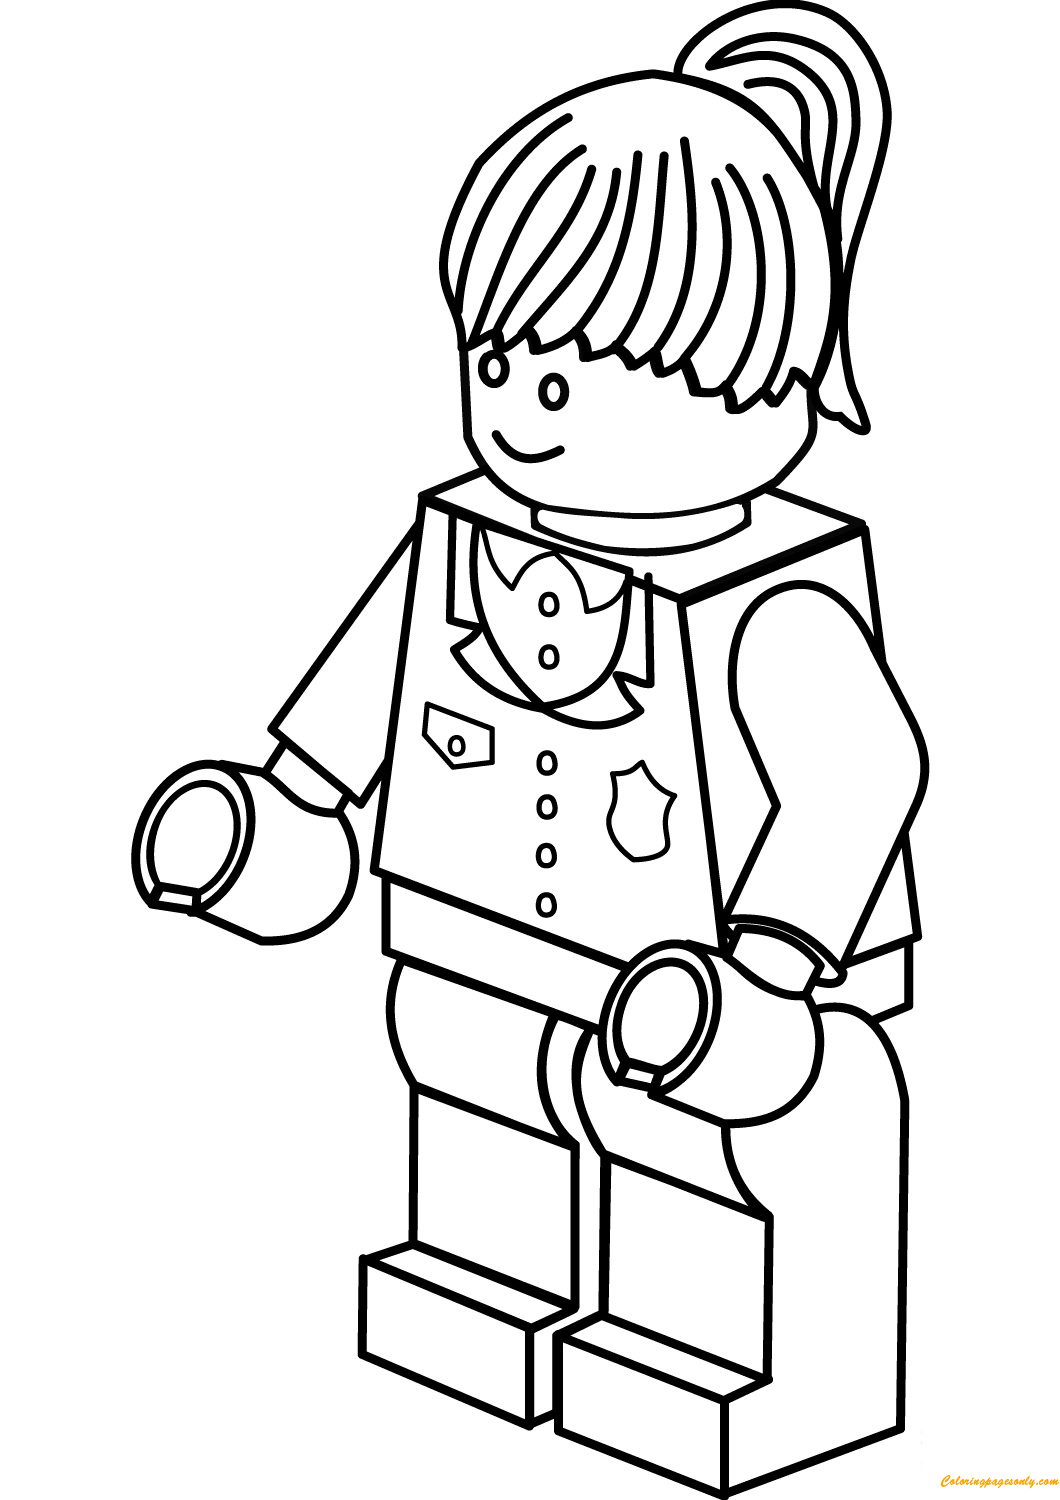 Lego City Police Woman Coloring Page Free Coloring Pages